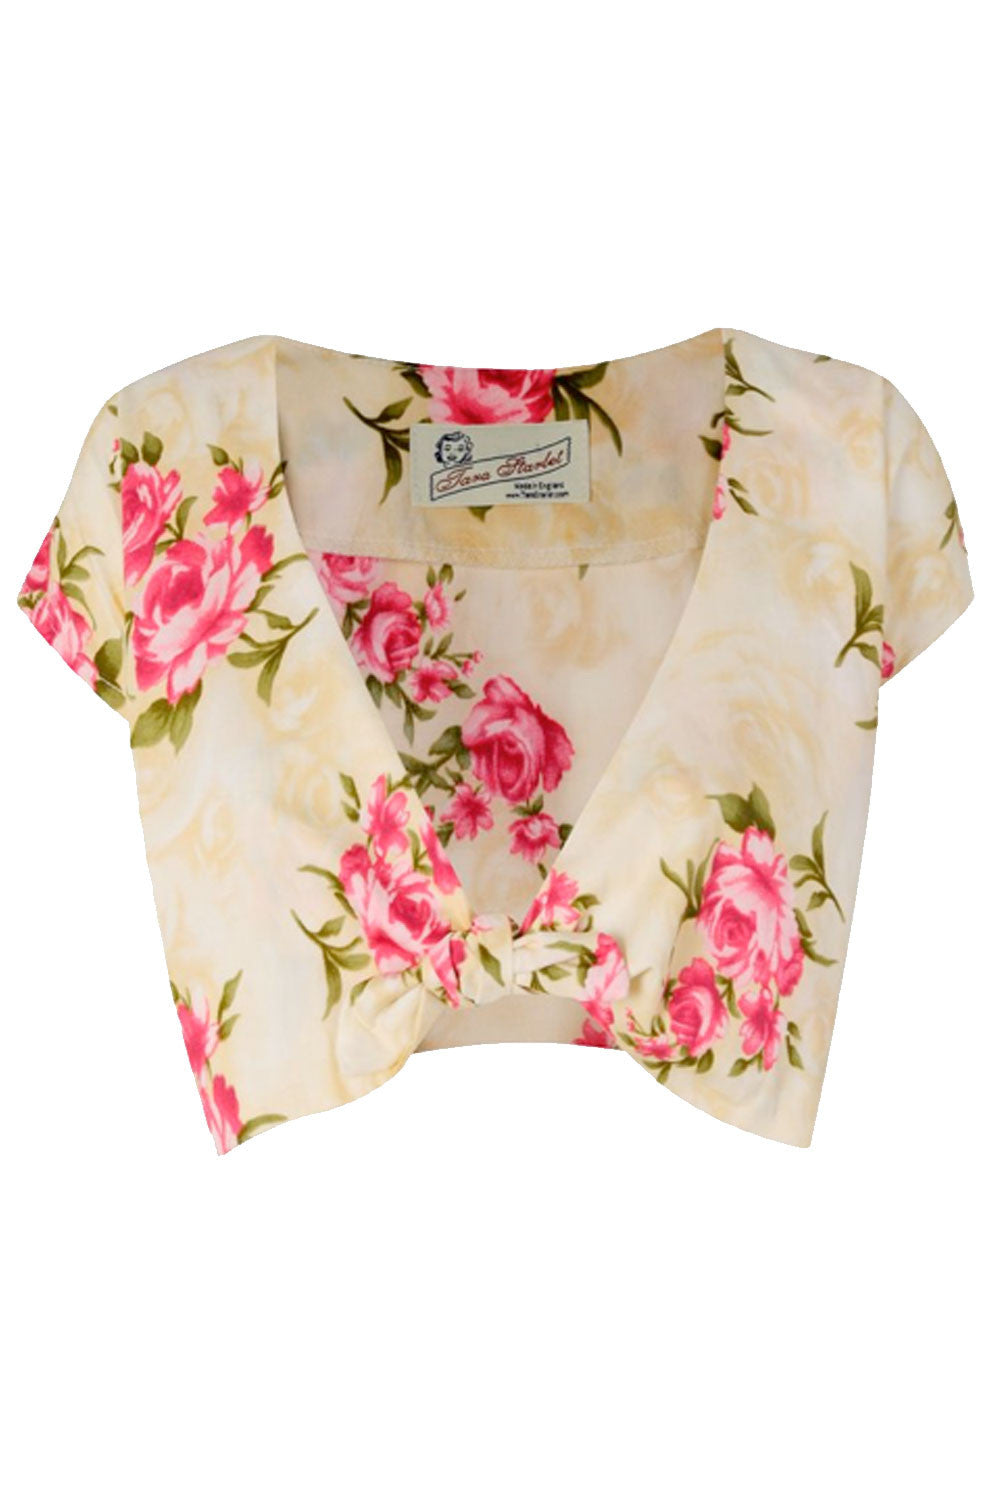 The Floral Knot Top - Pink Roses